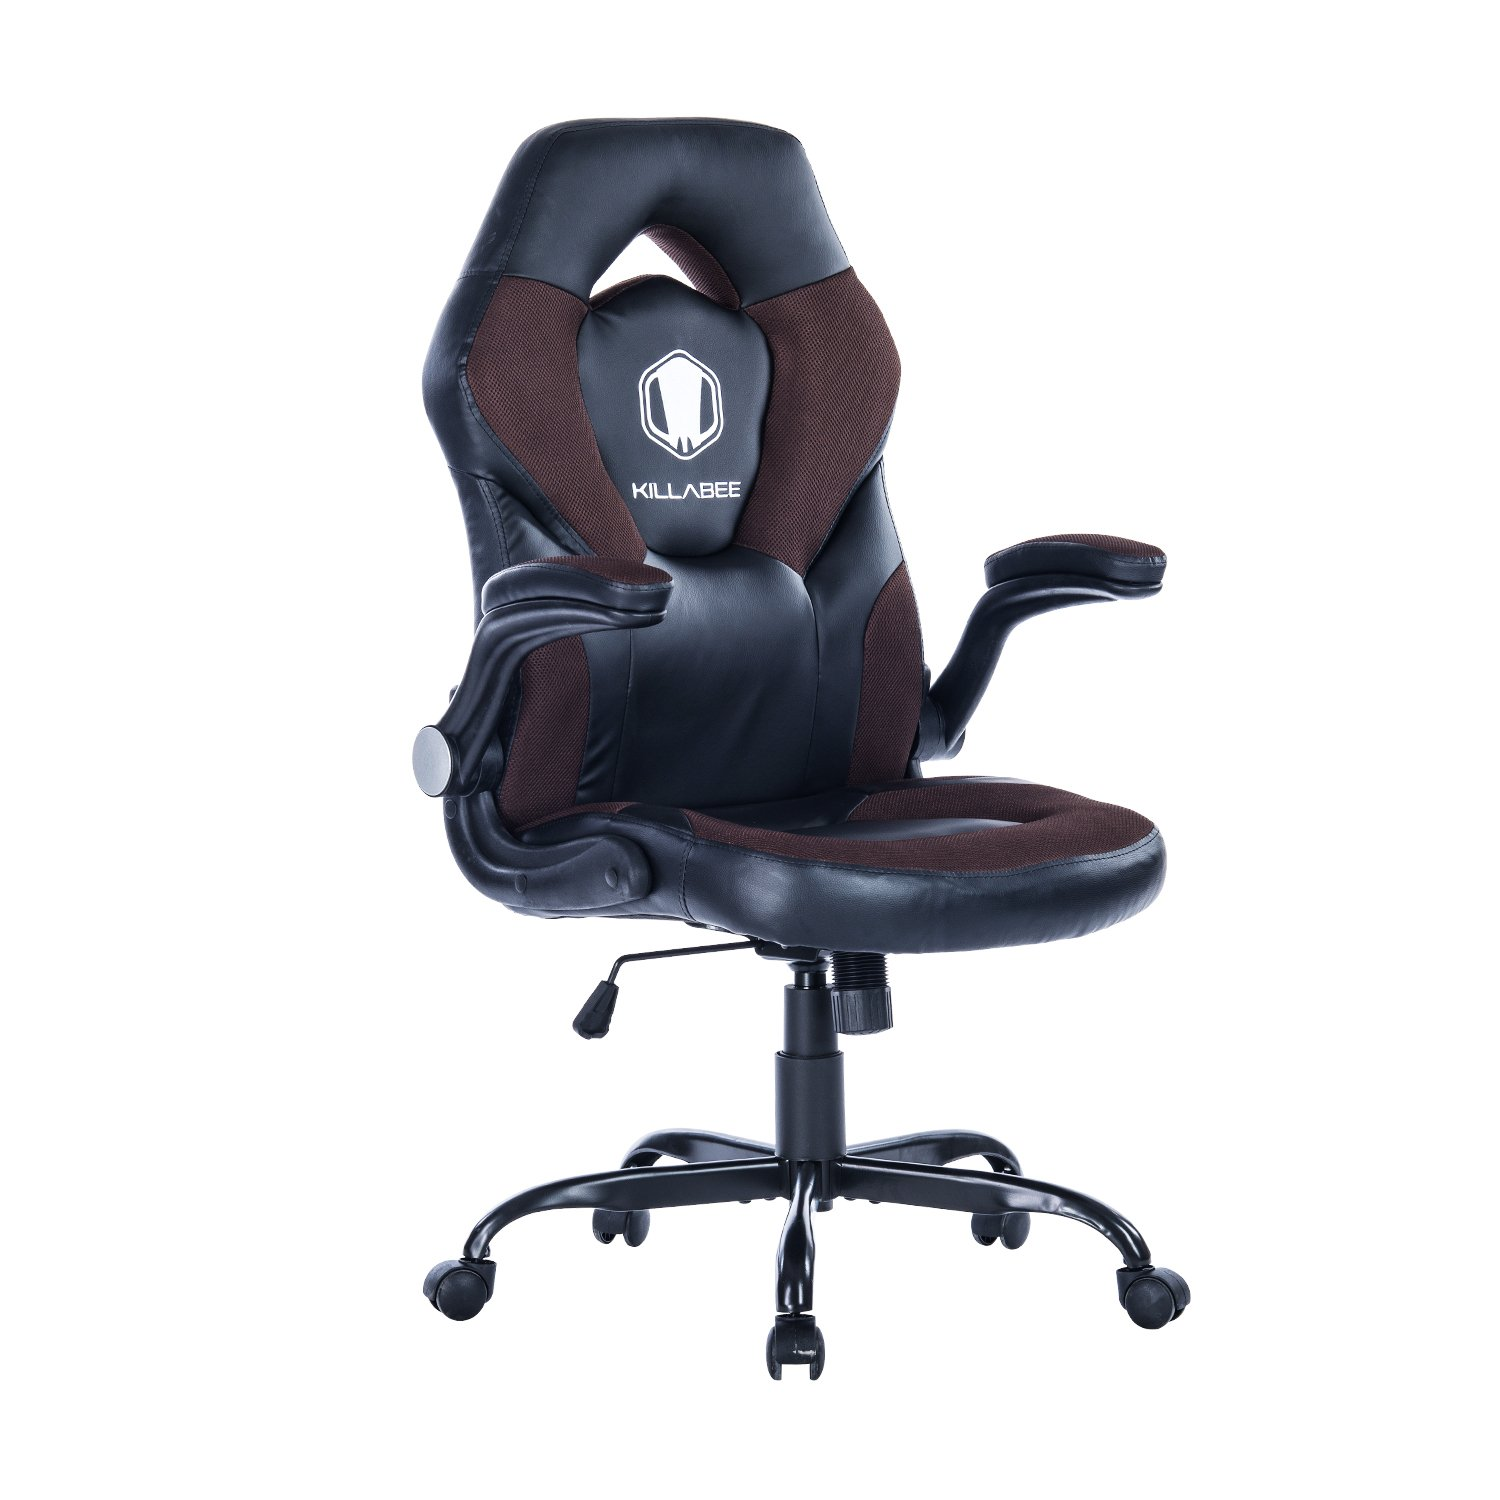 KILLABEE Racing Style Gaming Chair Flip-Up Arms - Ergonomic Leather & Mesh Computer Desk Office Chair, Brown & Black by KILLABEE